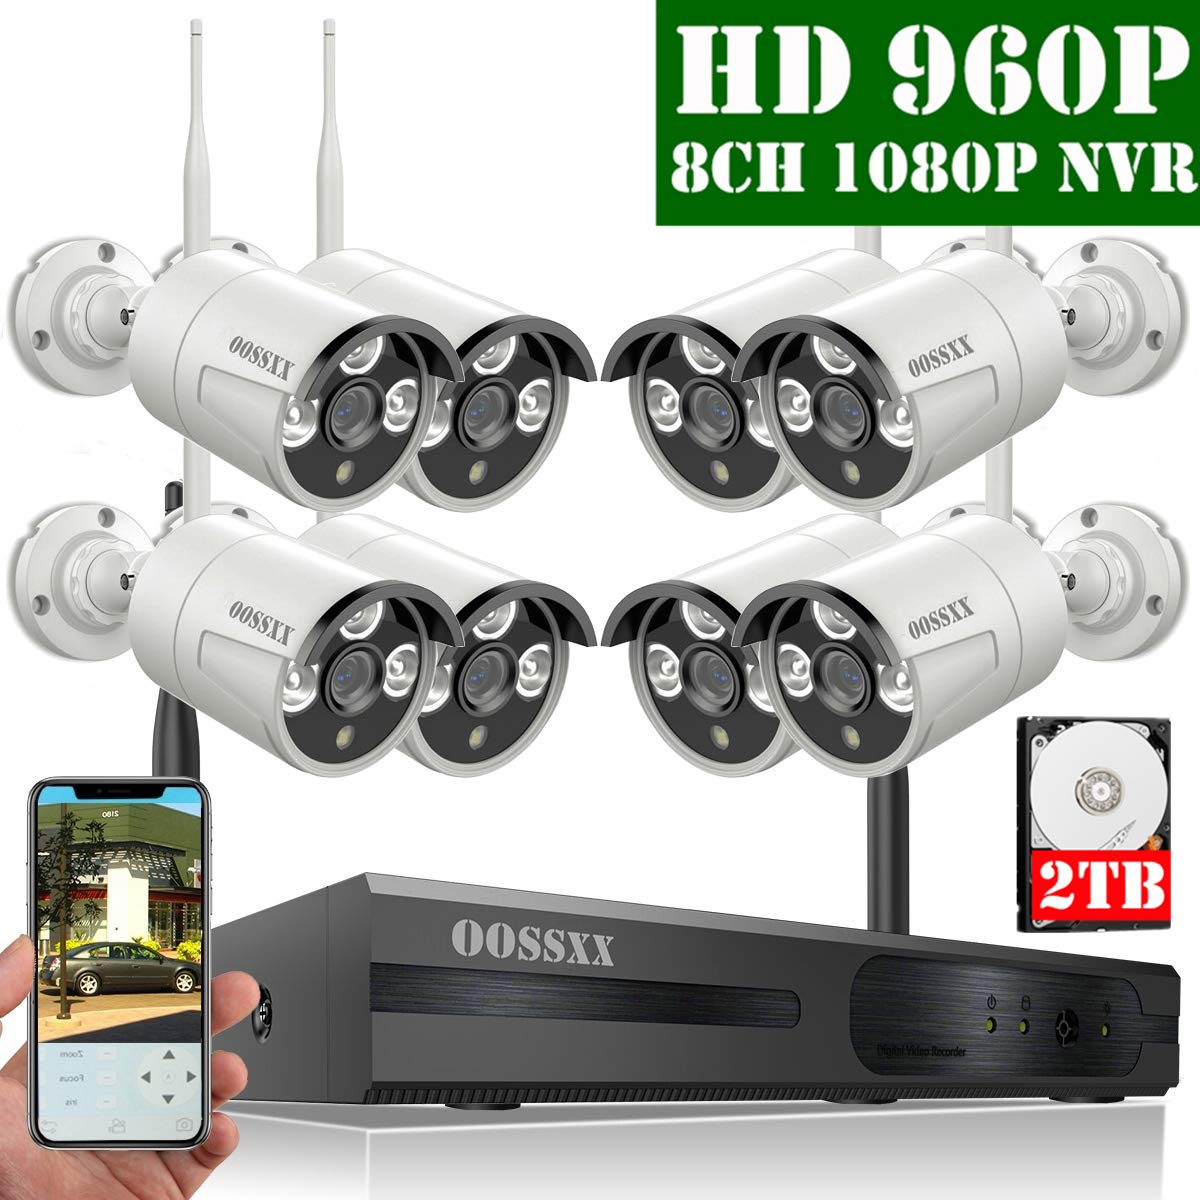 【2019 Update】 OOSSXX 8-Channel HD 1080P Wireless Security Camera System,8Pcs 960P 1.3 Megapixel Wireless Indoor/Outdoor IR Bullet IP Cameras,P2P,App, HDMI Cord & 2TB HDD Pre-Install by OOSSXX